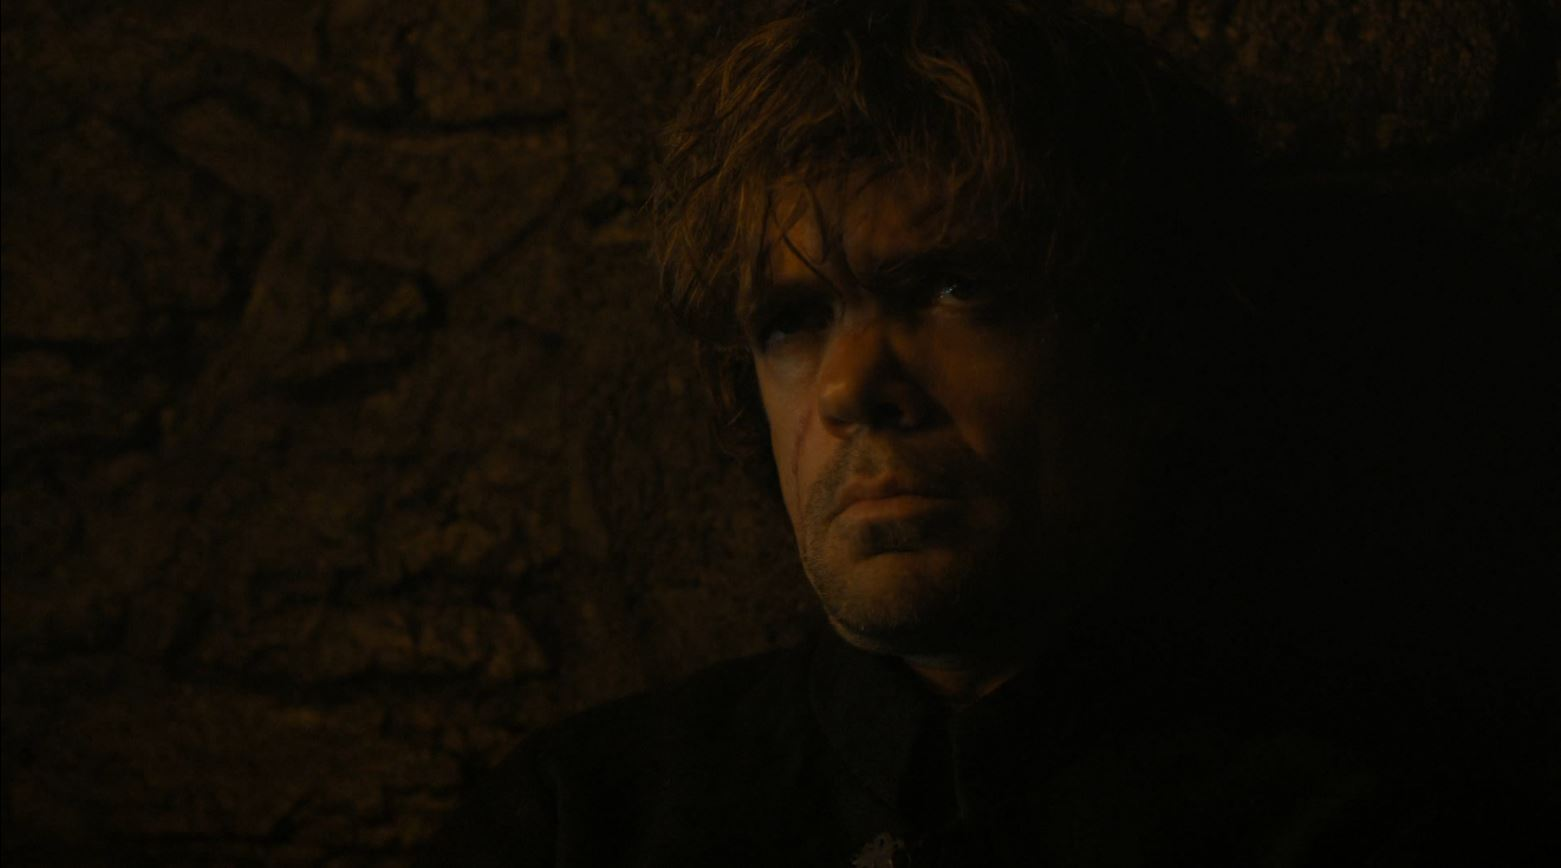 Game Of Thrones S4Ep7 Mockingbird Review - Peter Dinklage as Tyrion Lannister in the dungeon